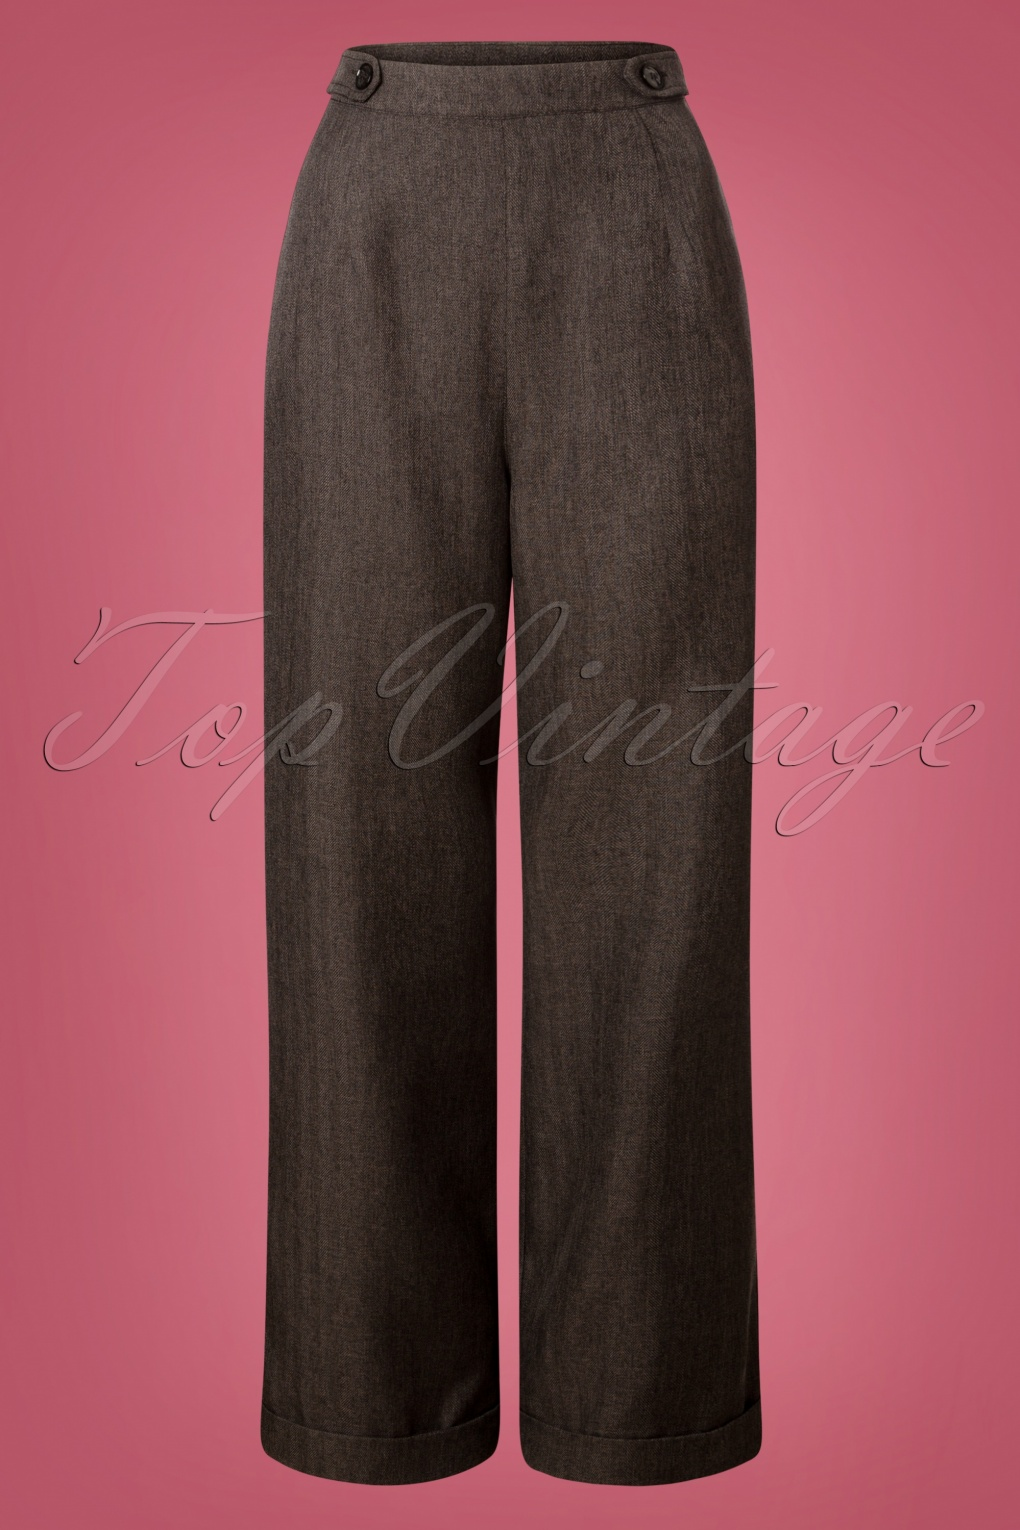 1940s Swing Pants & Sailor Trousers- Wide Leg, High Waist 40s Secretary Trousers in Charcoal £32.34 AT vintagedancer.com